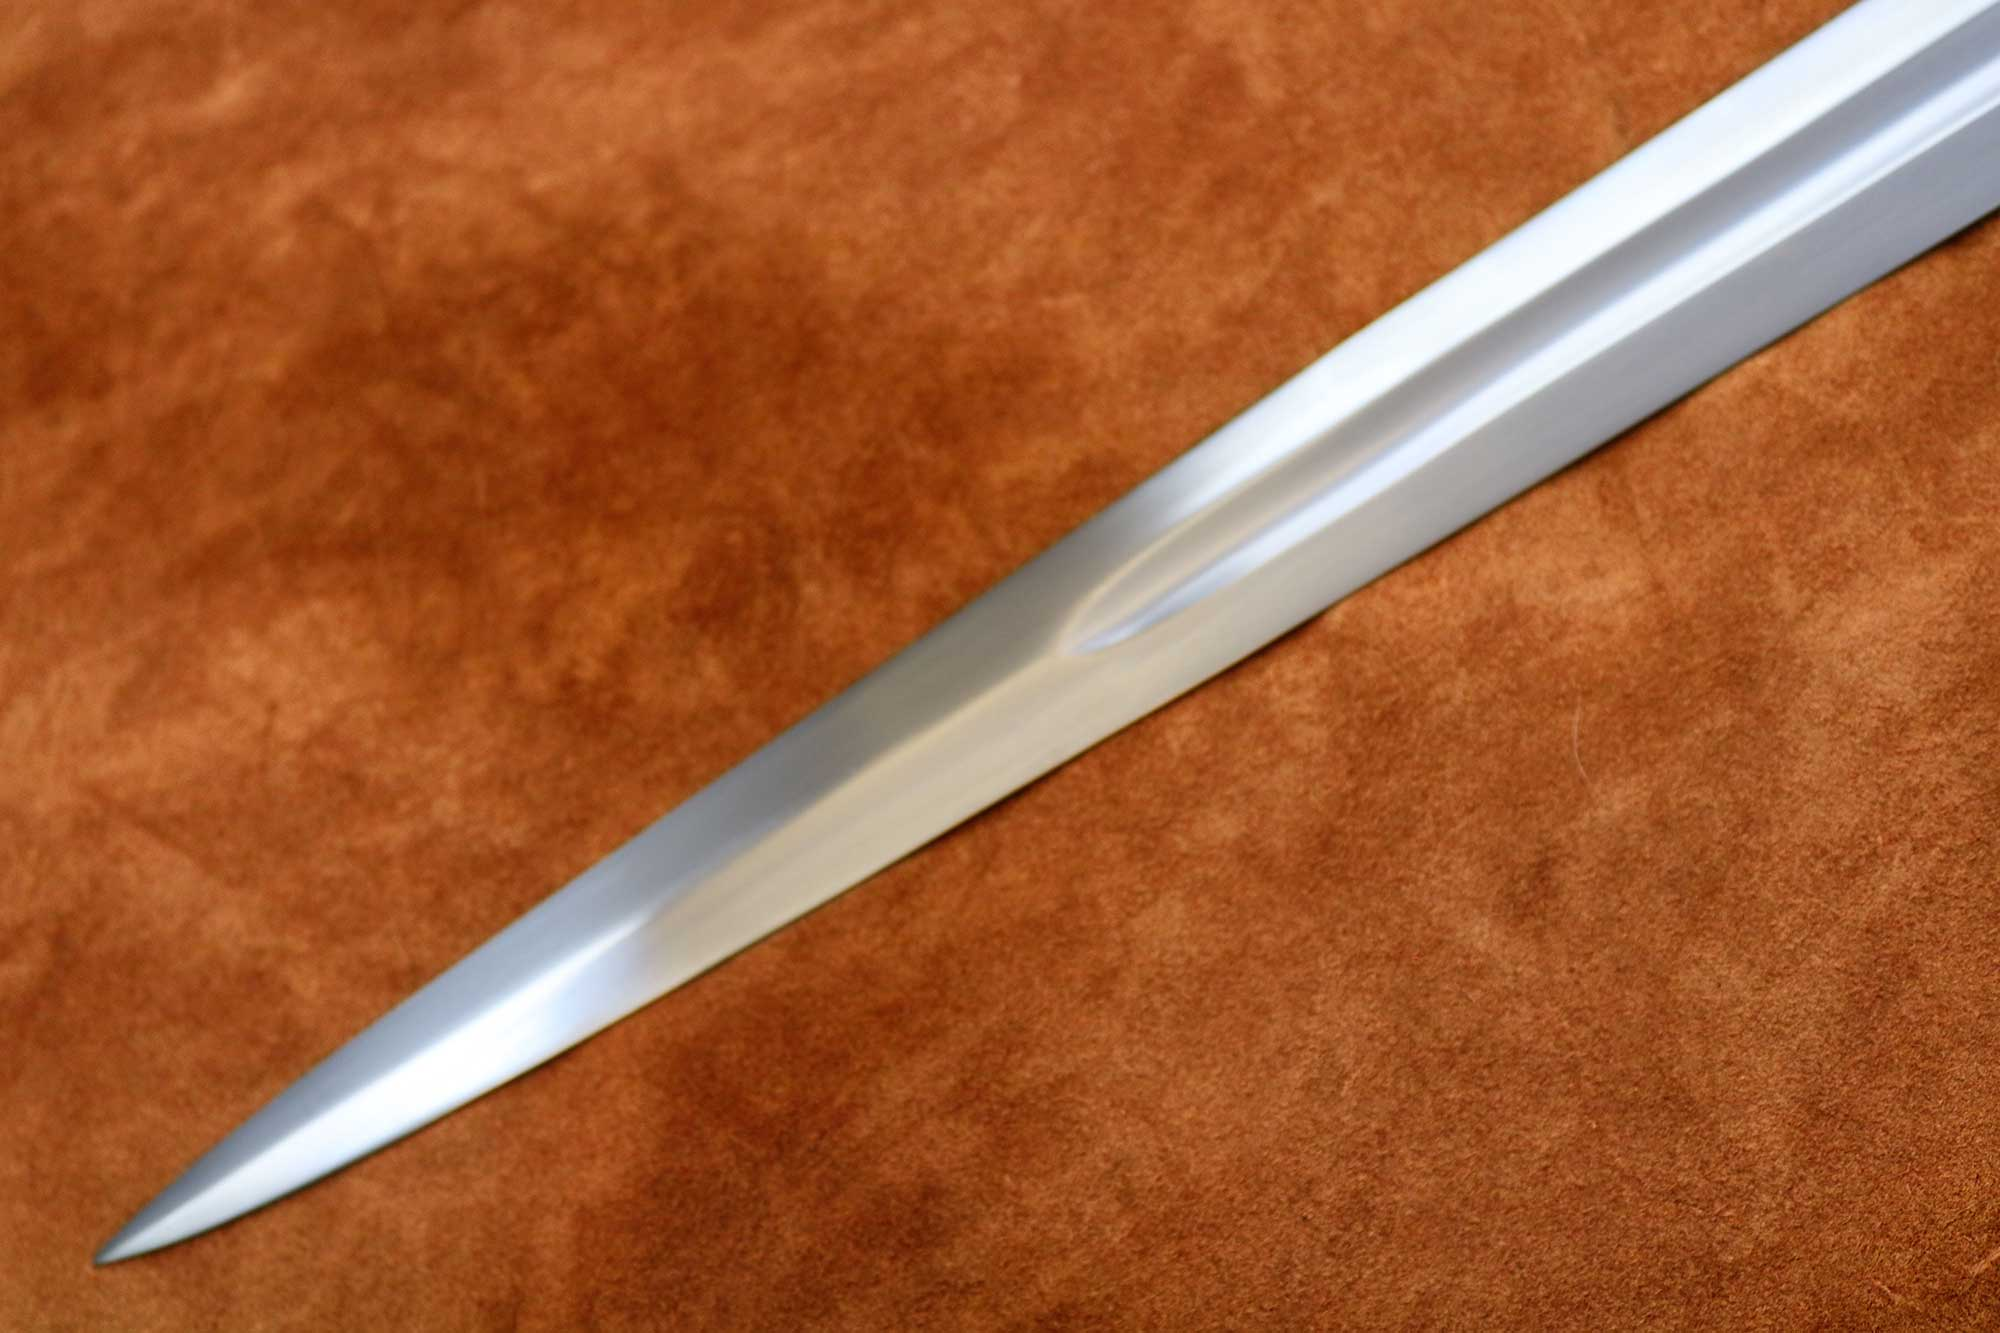 14th-century-medieval-sword-medieval-weapon-1354-blade-tip